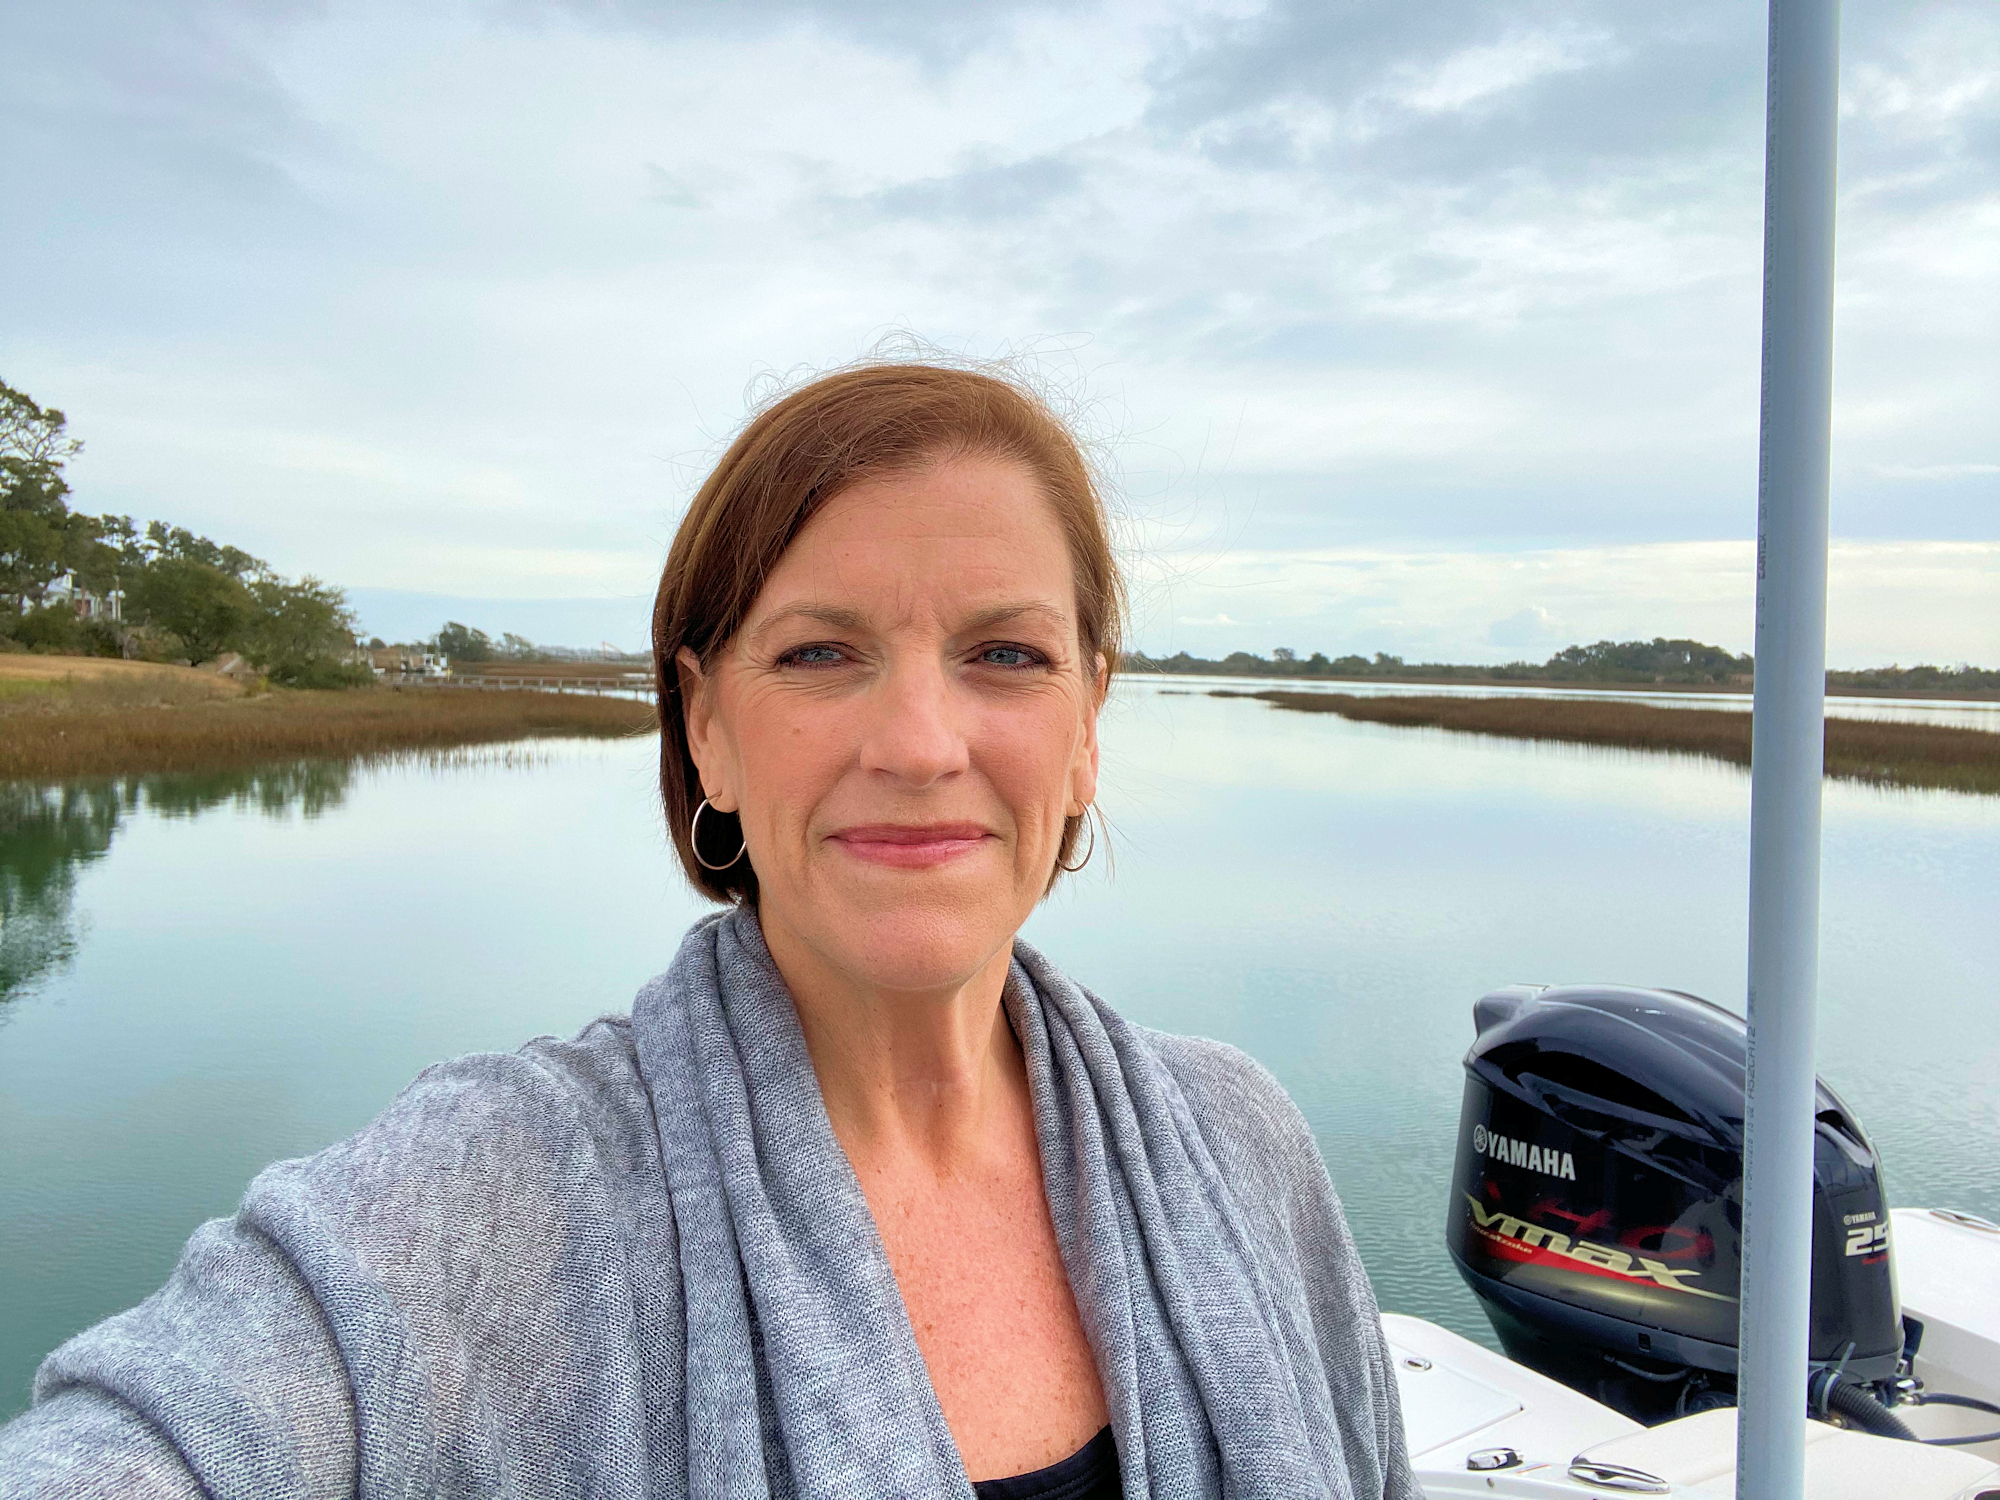 Waterfront Homes for Sale in Wilmington NC - Melanie Cameron r